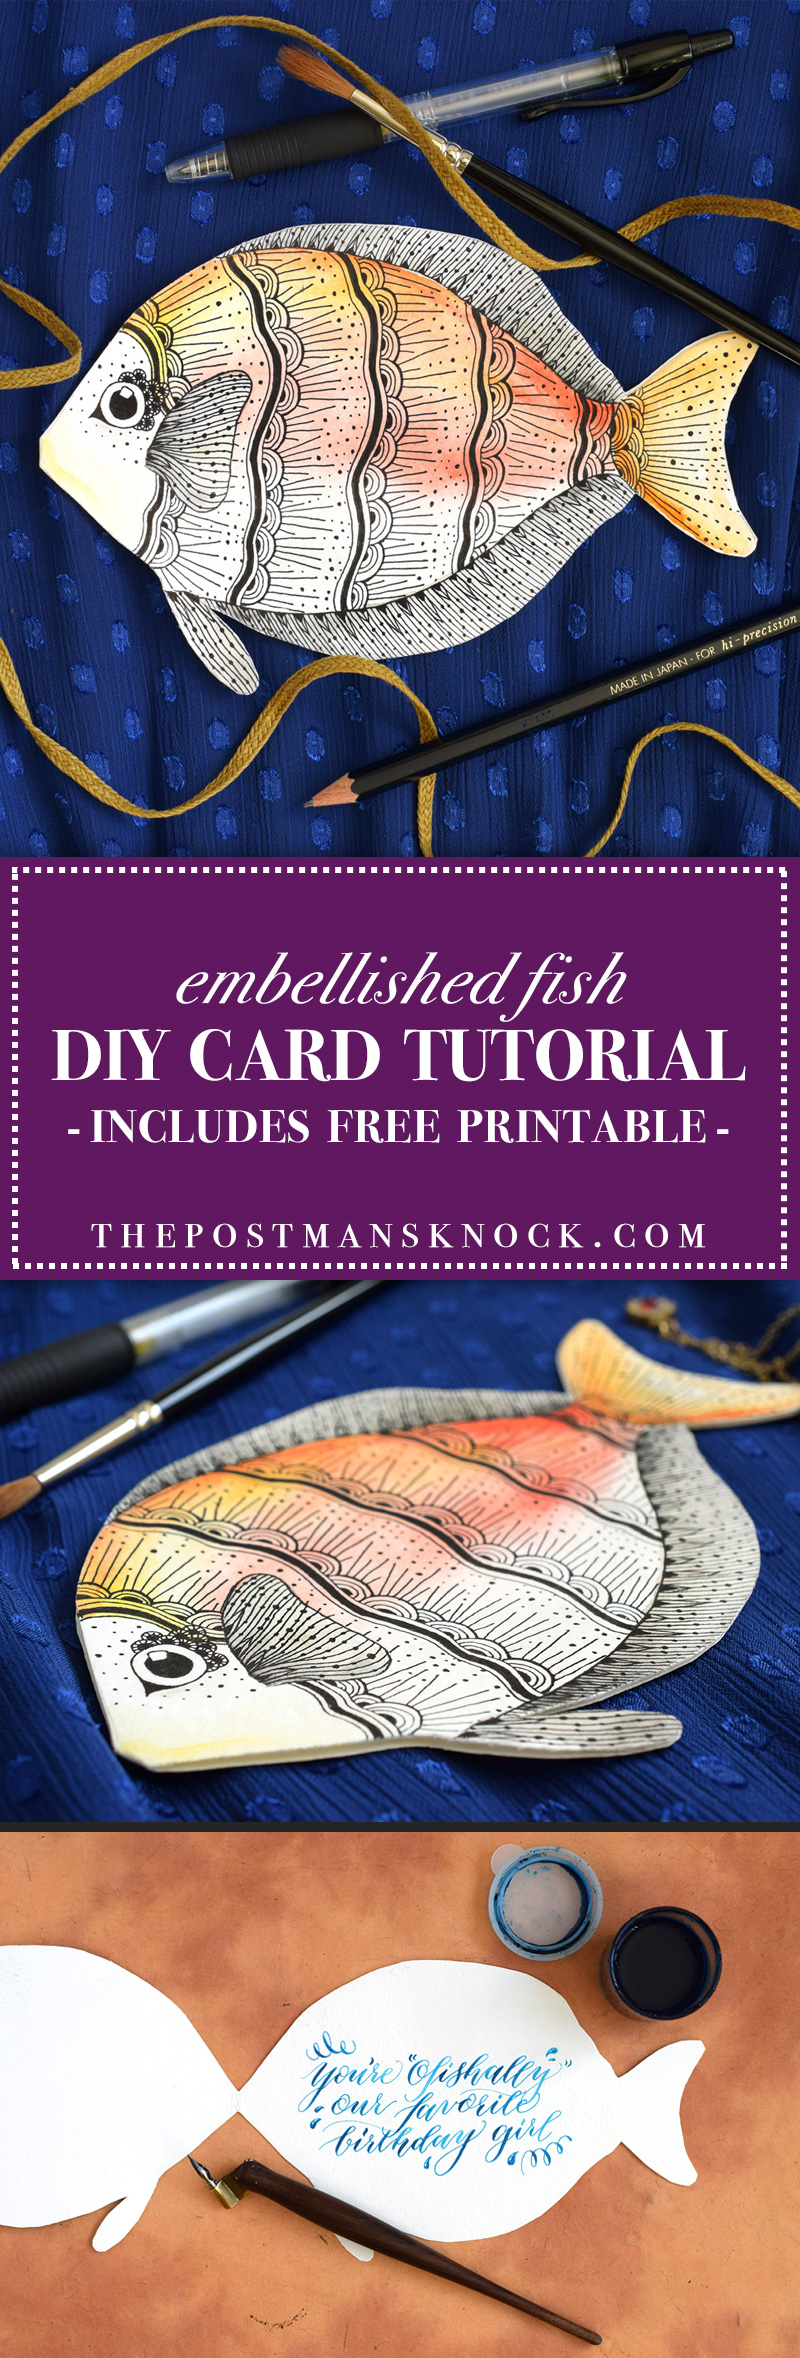 Embellished Fish DIY Card Tutorial | The Postman's Knock